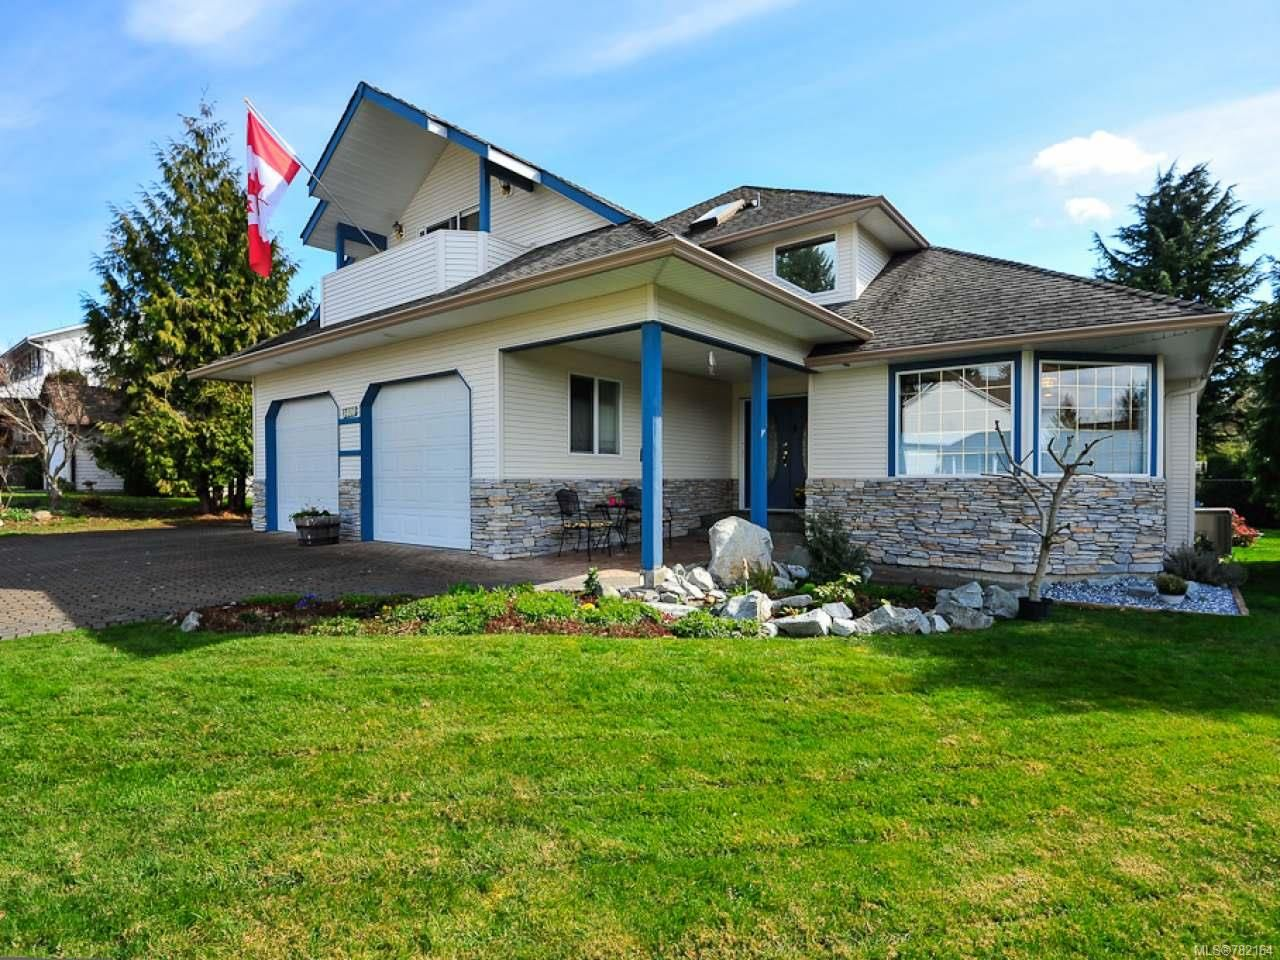 Main Photo: 1400 MALAHAT DRIVE in COURTENAY: CV Courtenay East House for sale (Comox Valley)  : MLS®# 782164